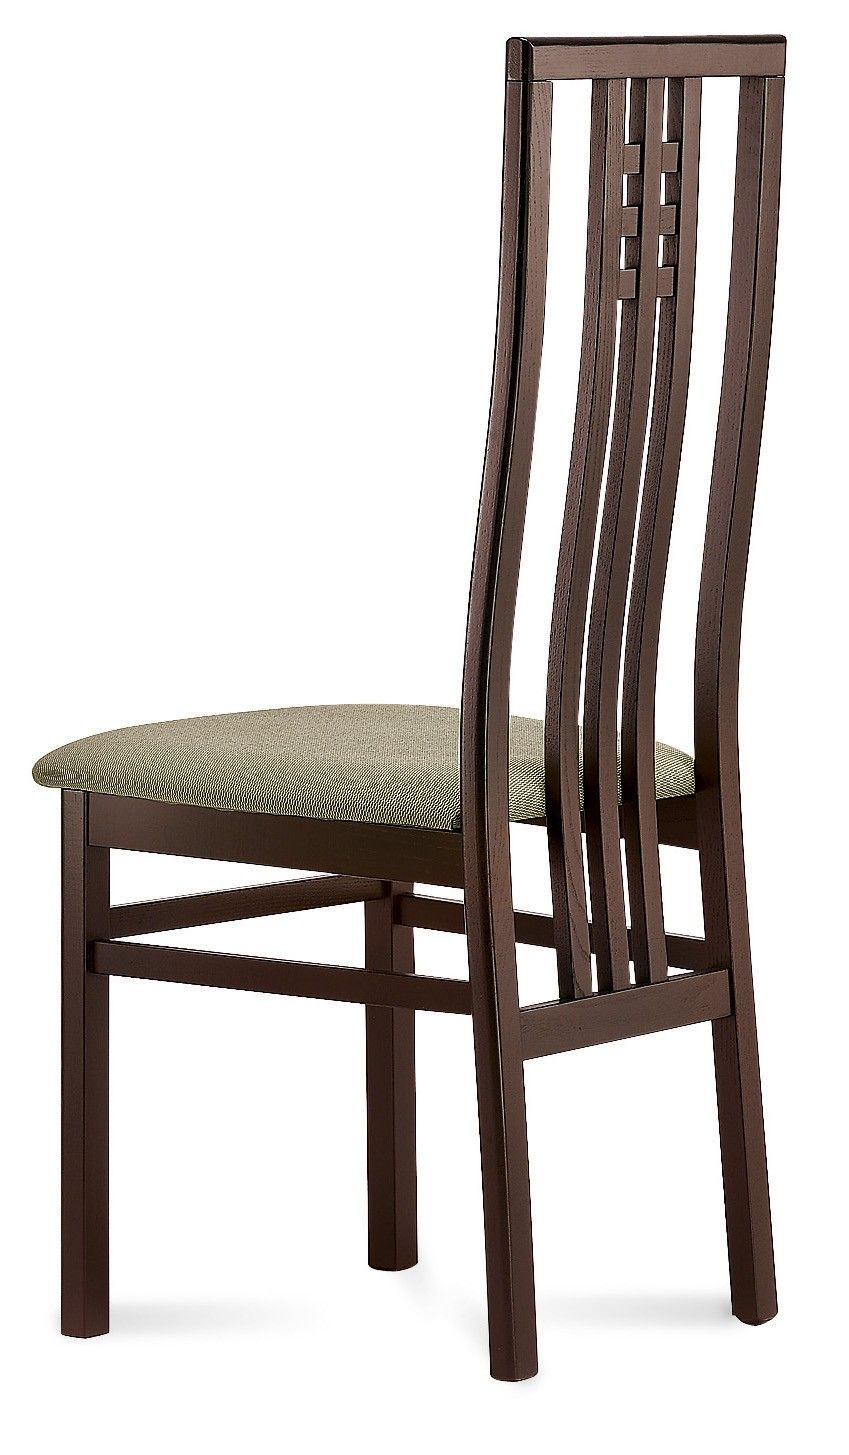 Wooden dining room chairs - Dining Room Chairs